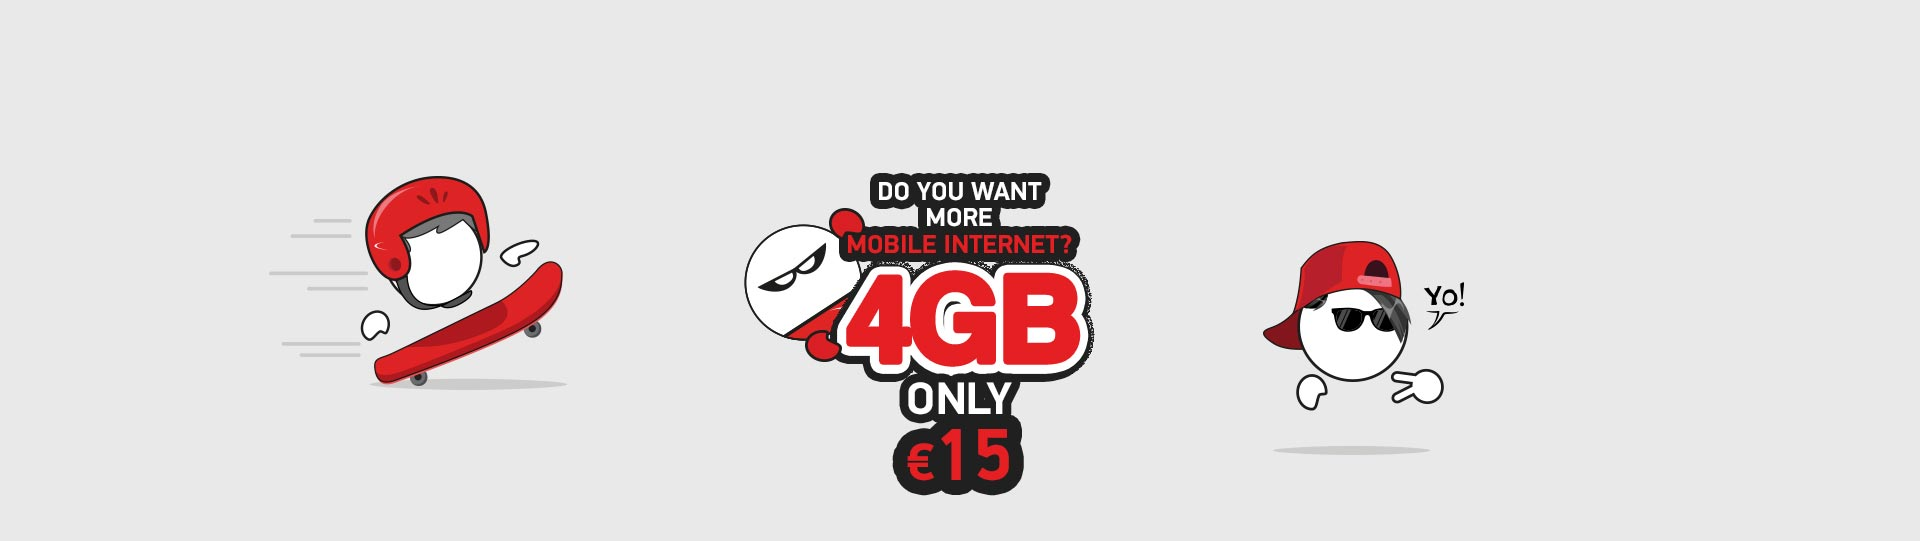 Img - 4GB Data bundle offer